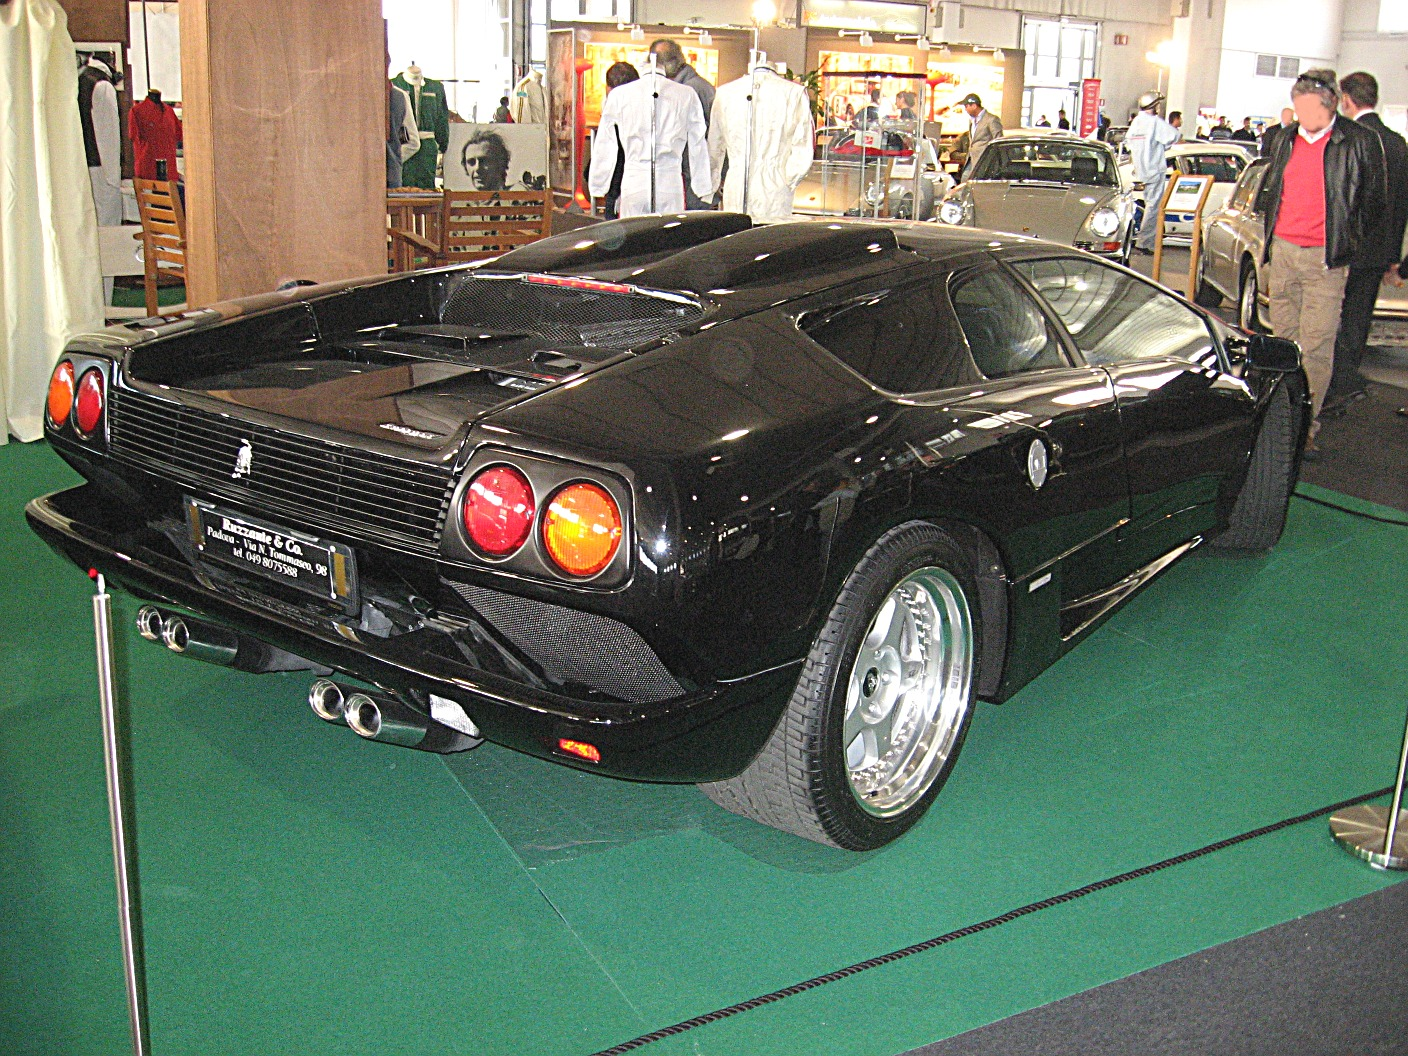 https://upload.wikimedia.org/wikipedia/commons/7/77/Lamborghini_Diablo-SE-Jota.JPG